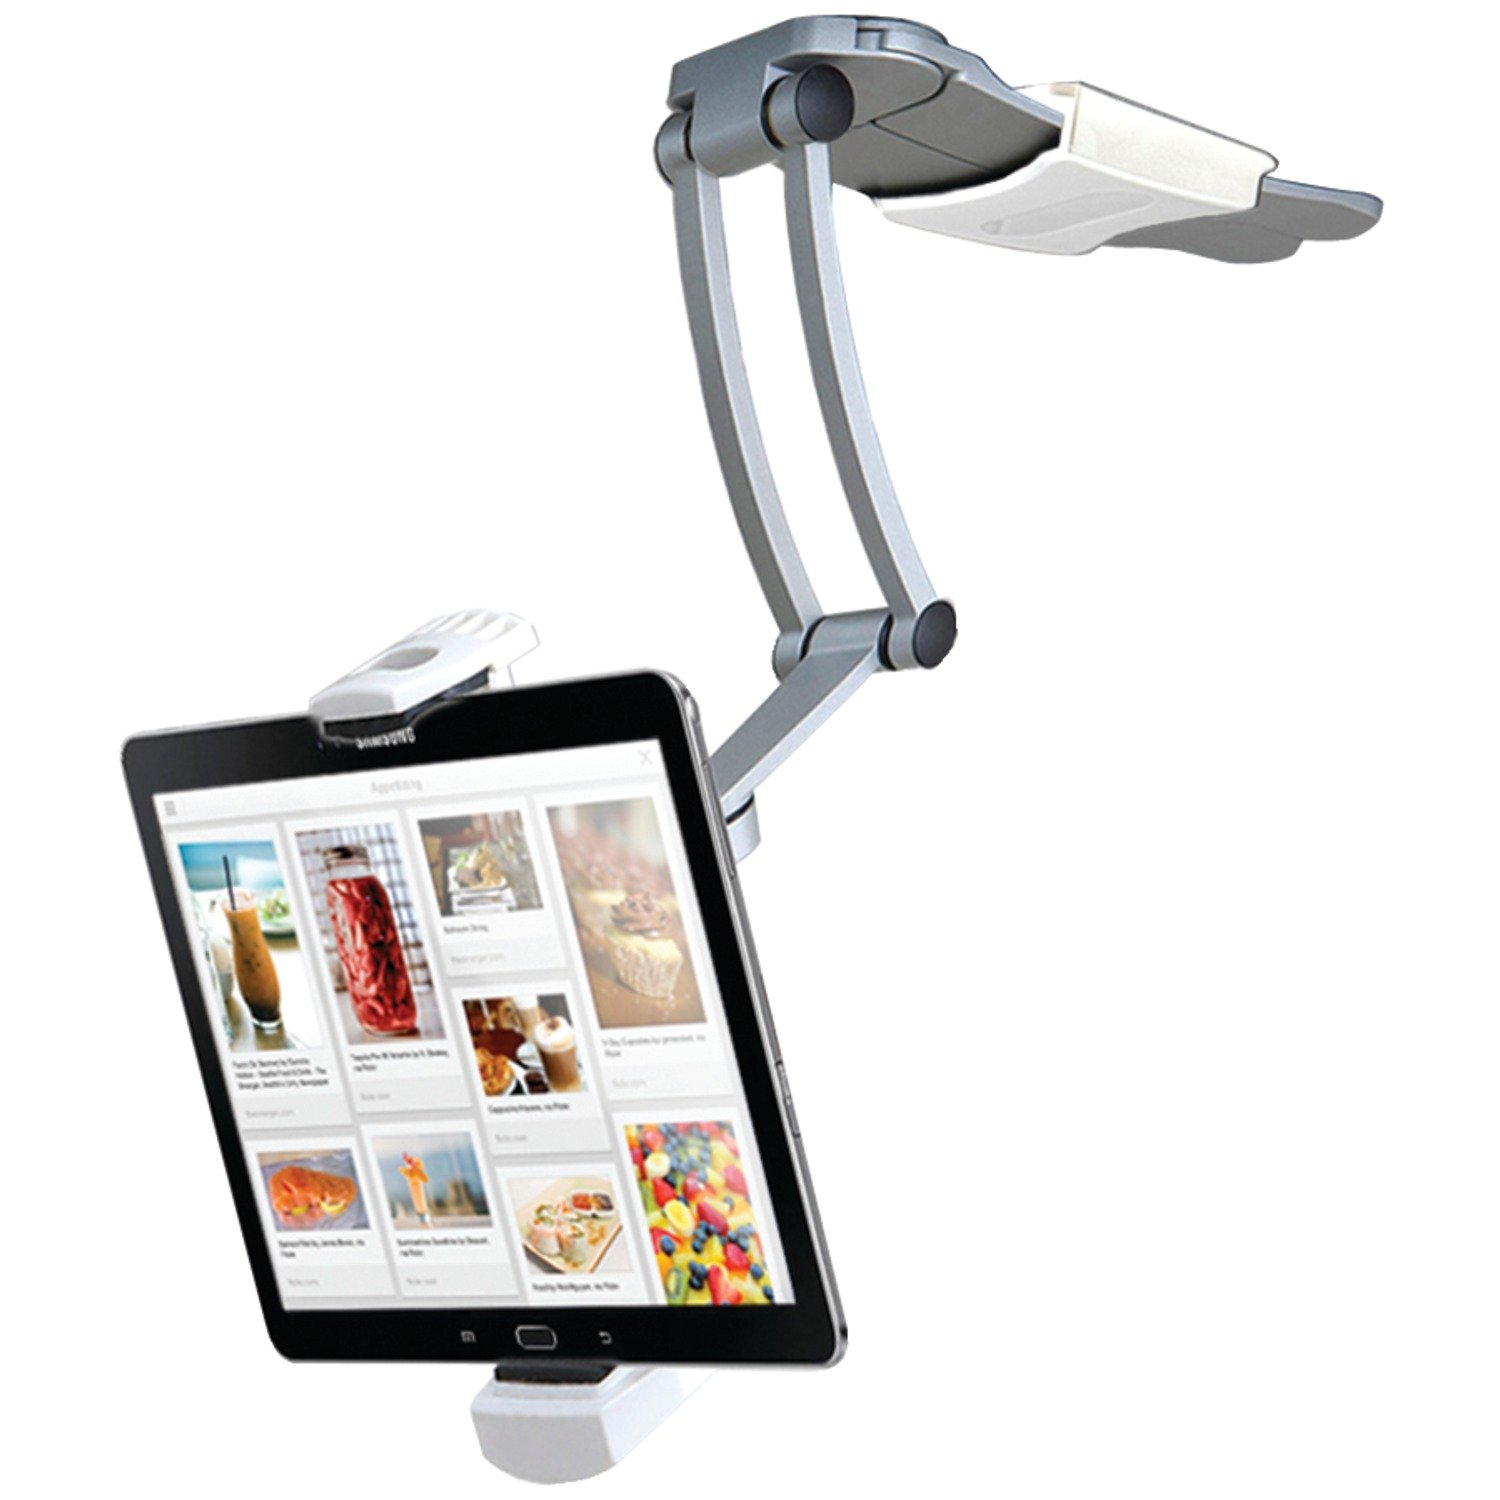 CTA Digital 2-in-1 Kitchen Mount Stand for iPad Air, iPad mini, Surface, & Other 7-12 Inch Tablets (PAD-KMS)